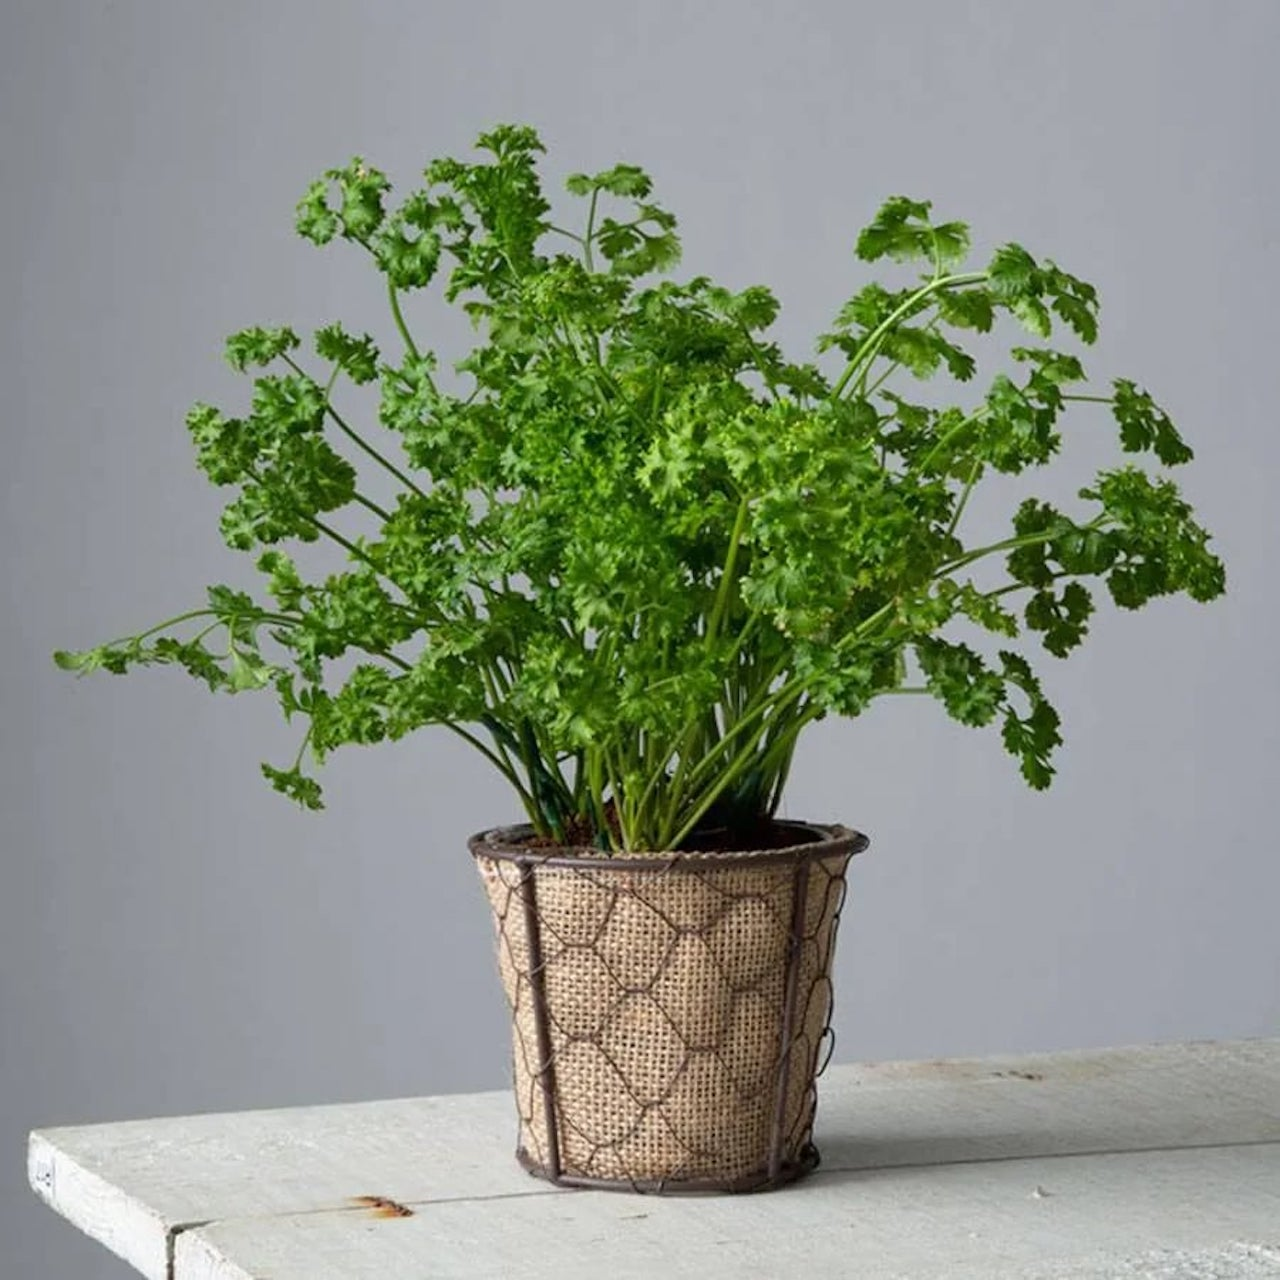 Curly parsley in a textured pot.